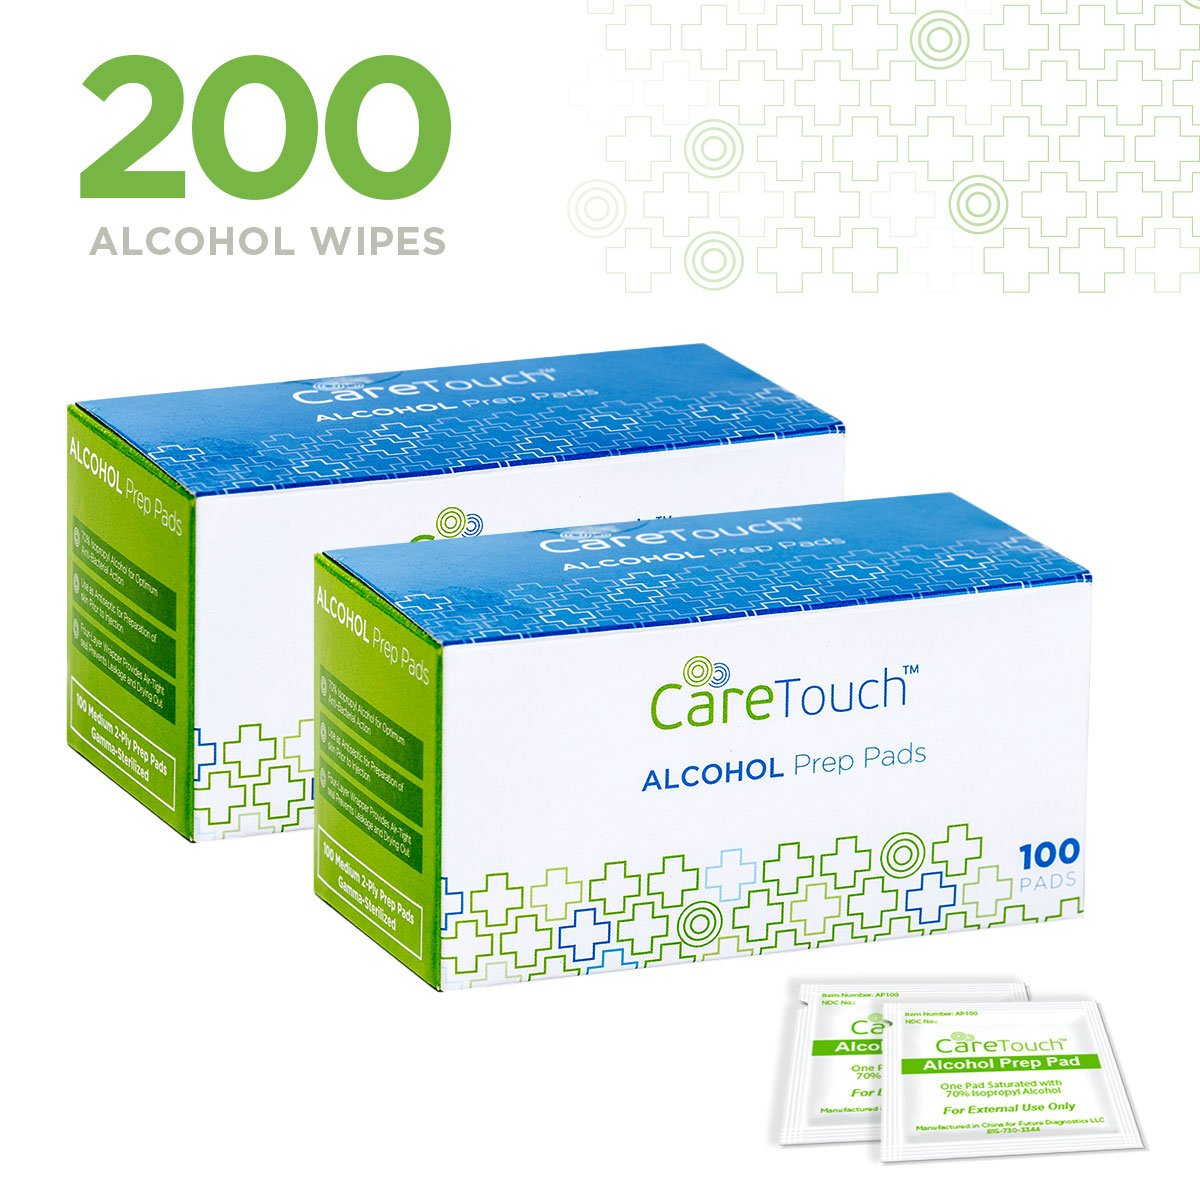 Care Touch Sterile Alcohol Prep Pads, Medium 2-Ply - 200 Alcohol Wipes product